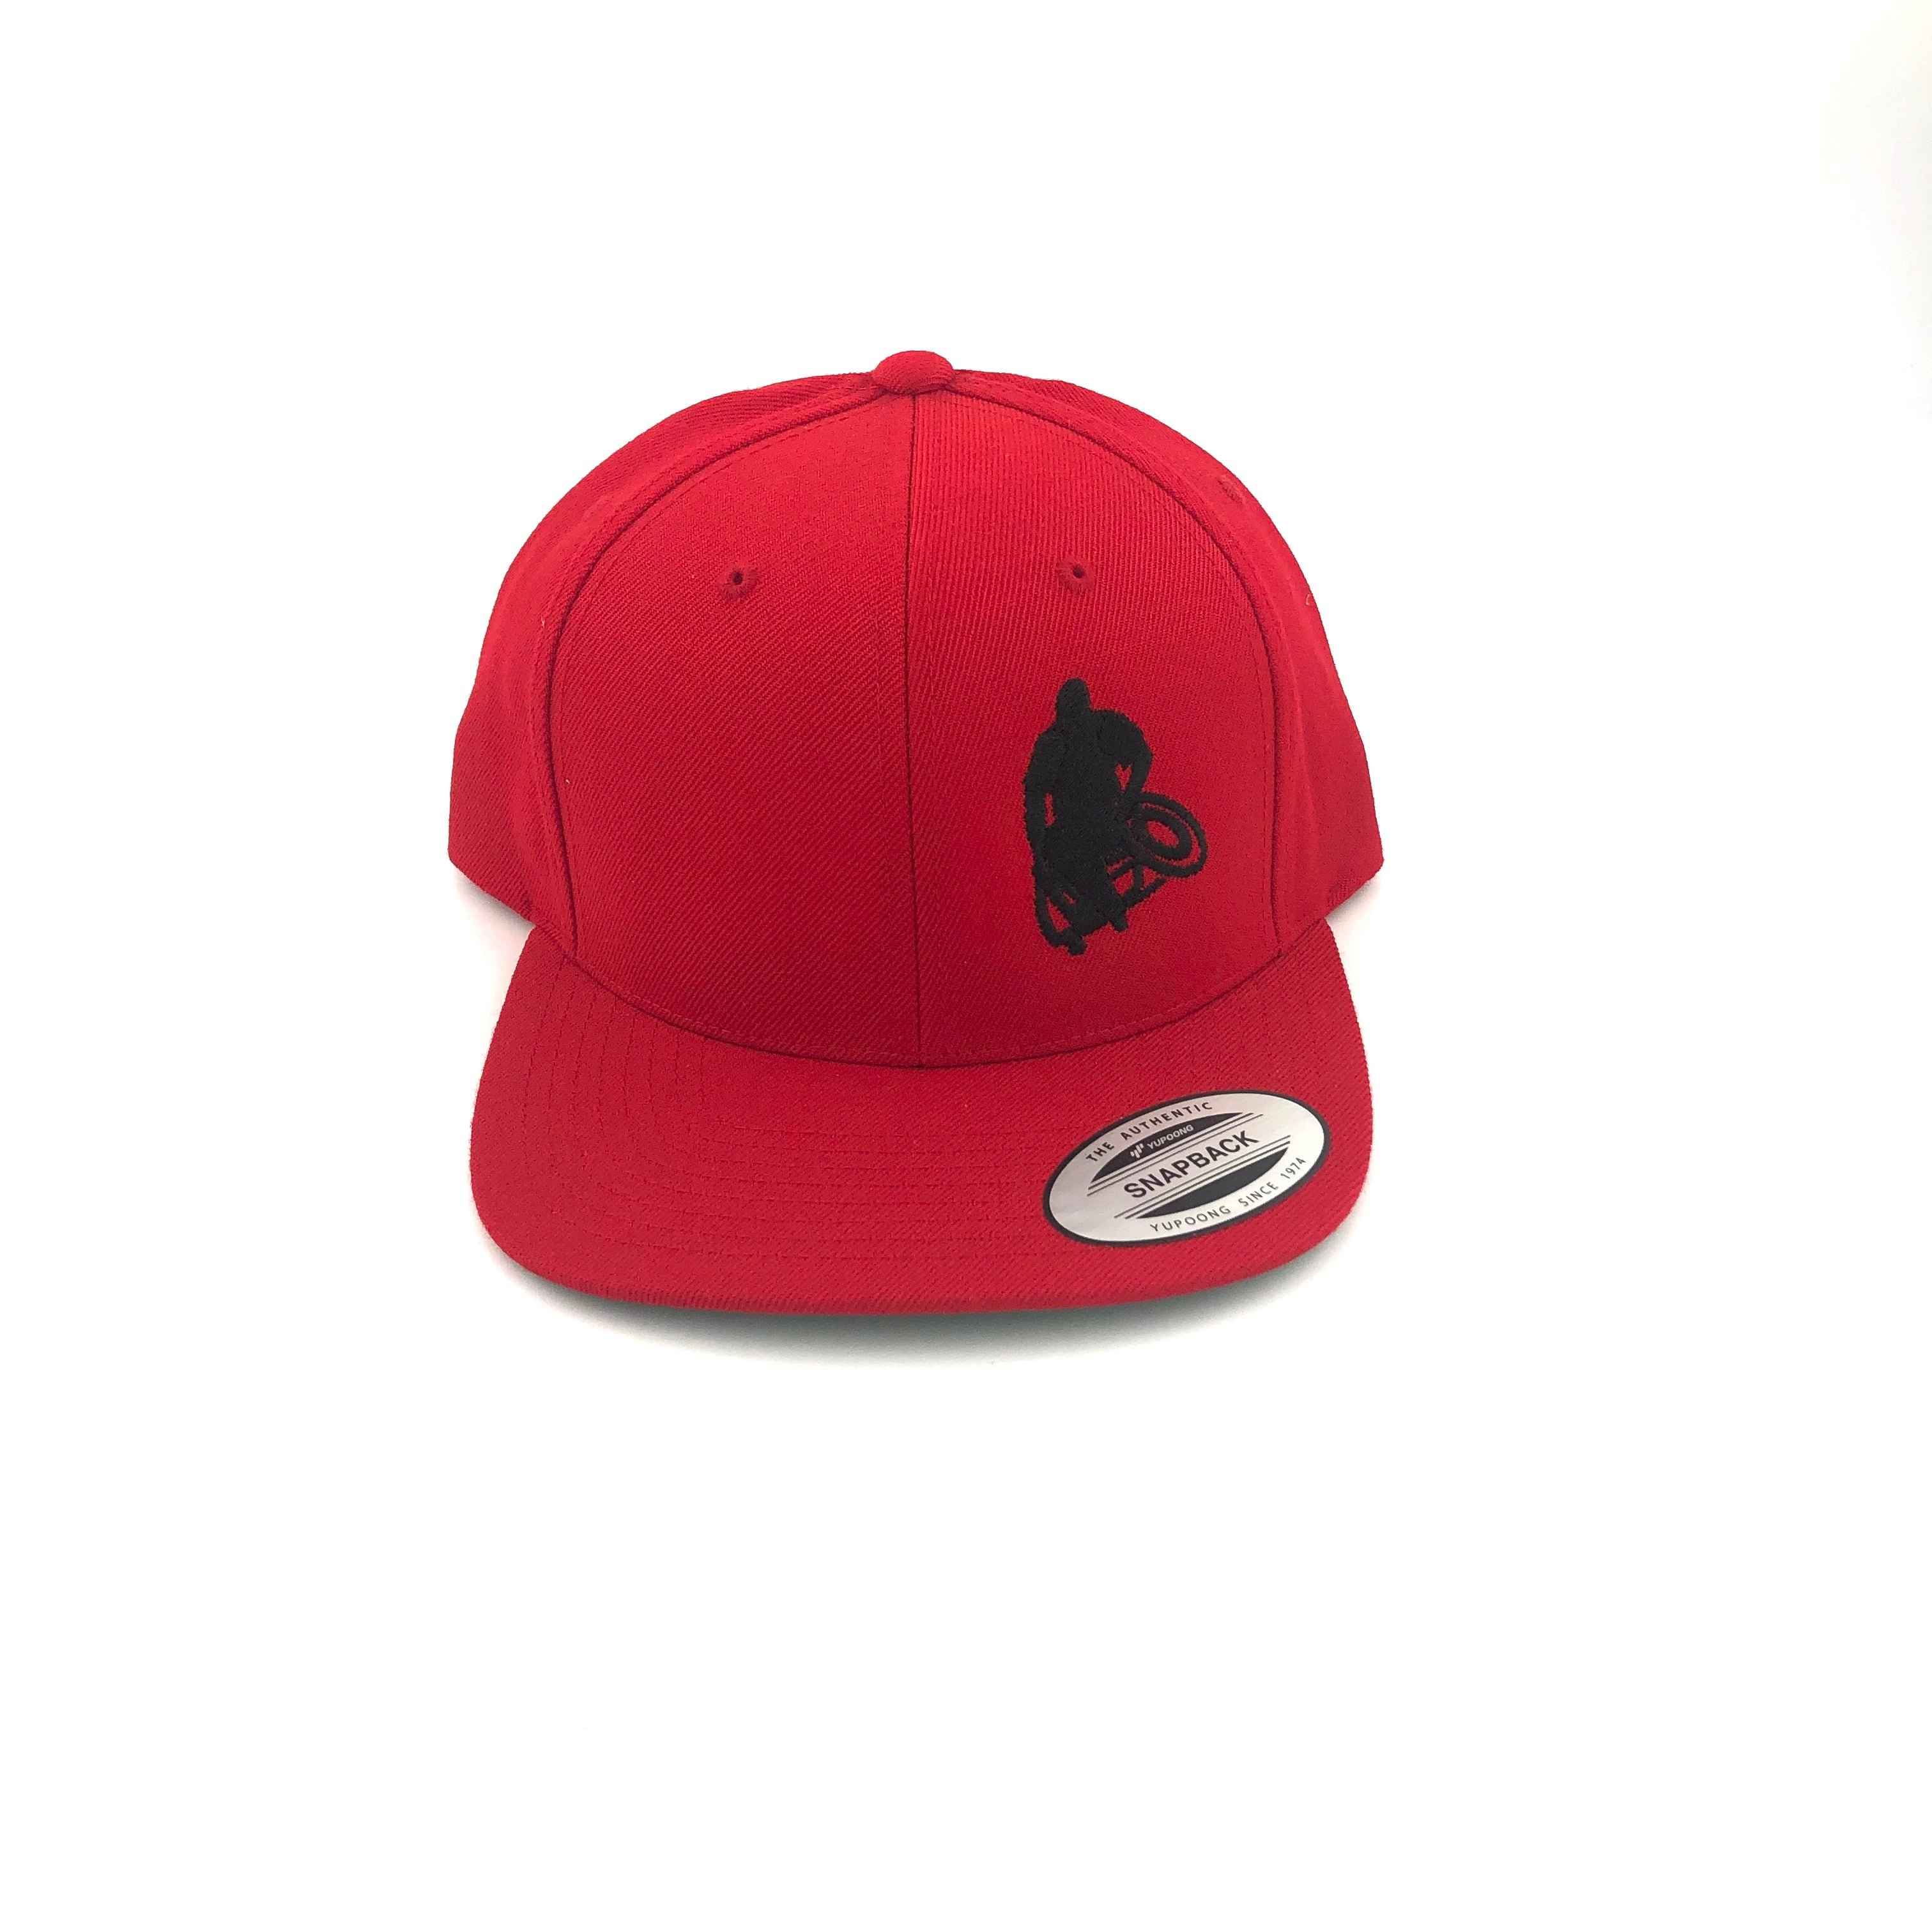 Red Flat-brim hat with black Wheelwod Logo on right front panel